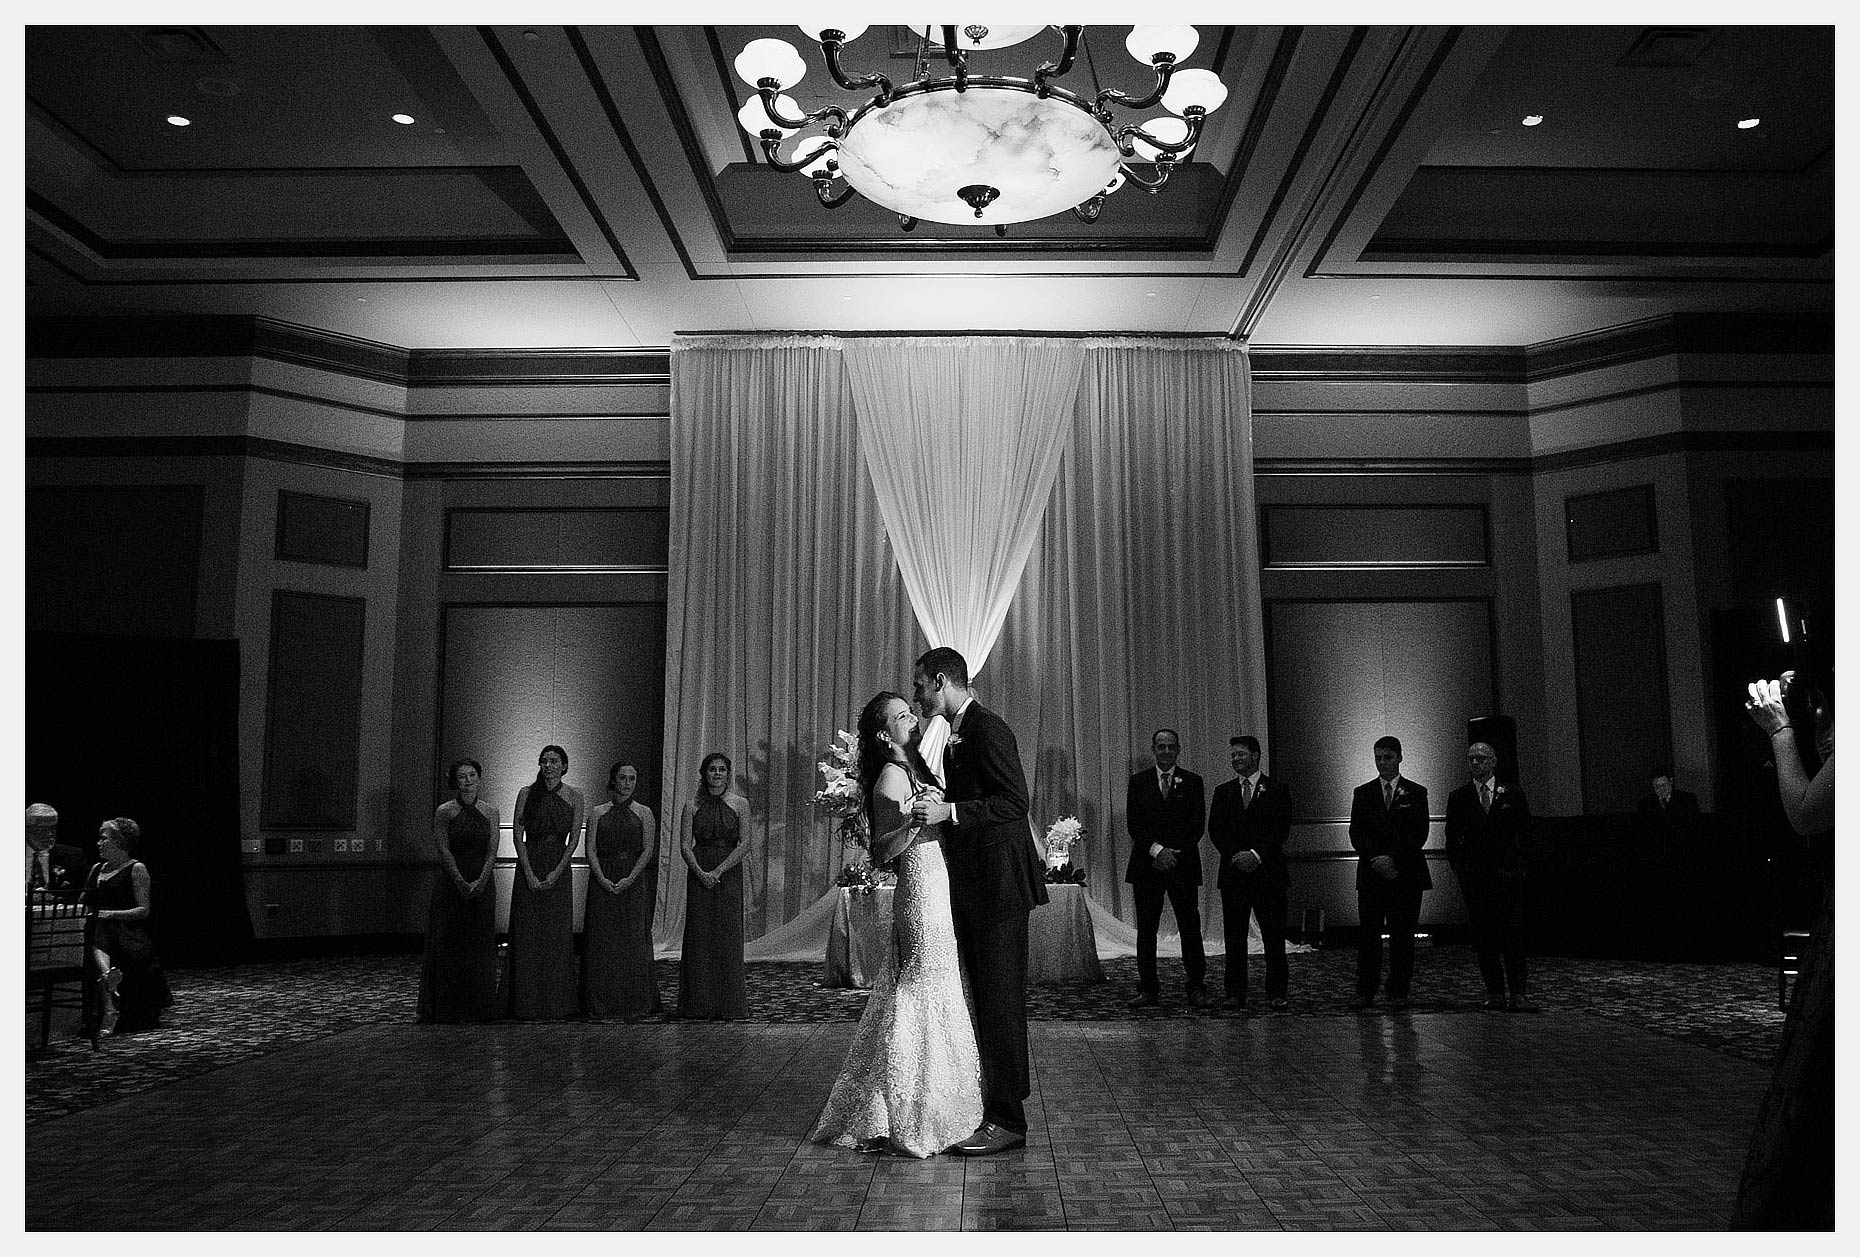 Madison-Carver-Wedding-by-Stephen-Masker-Photography-0104